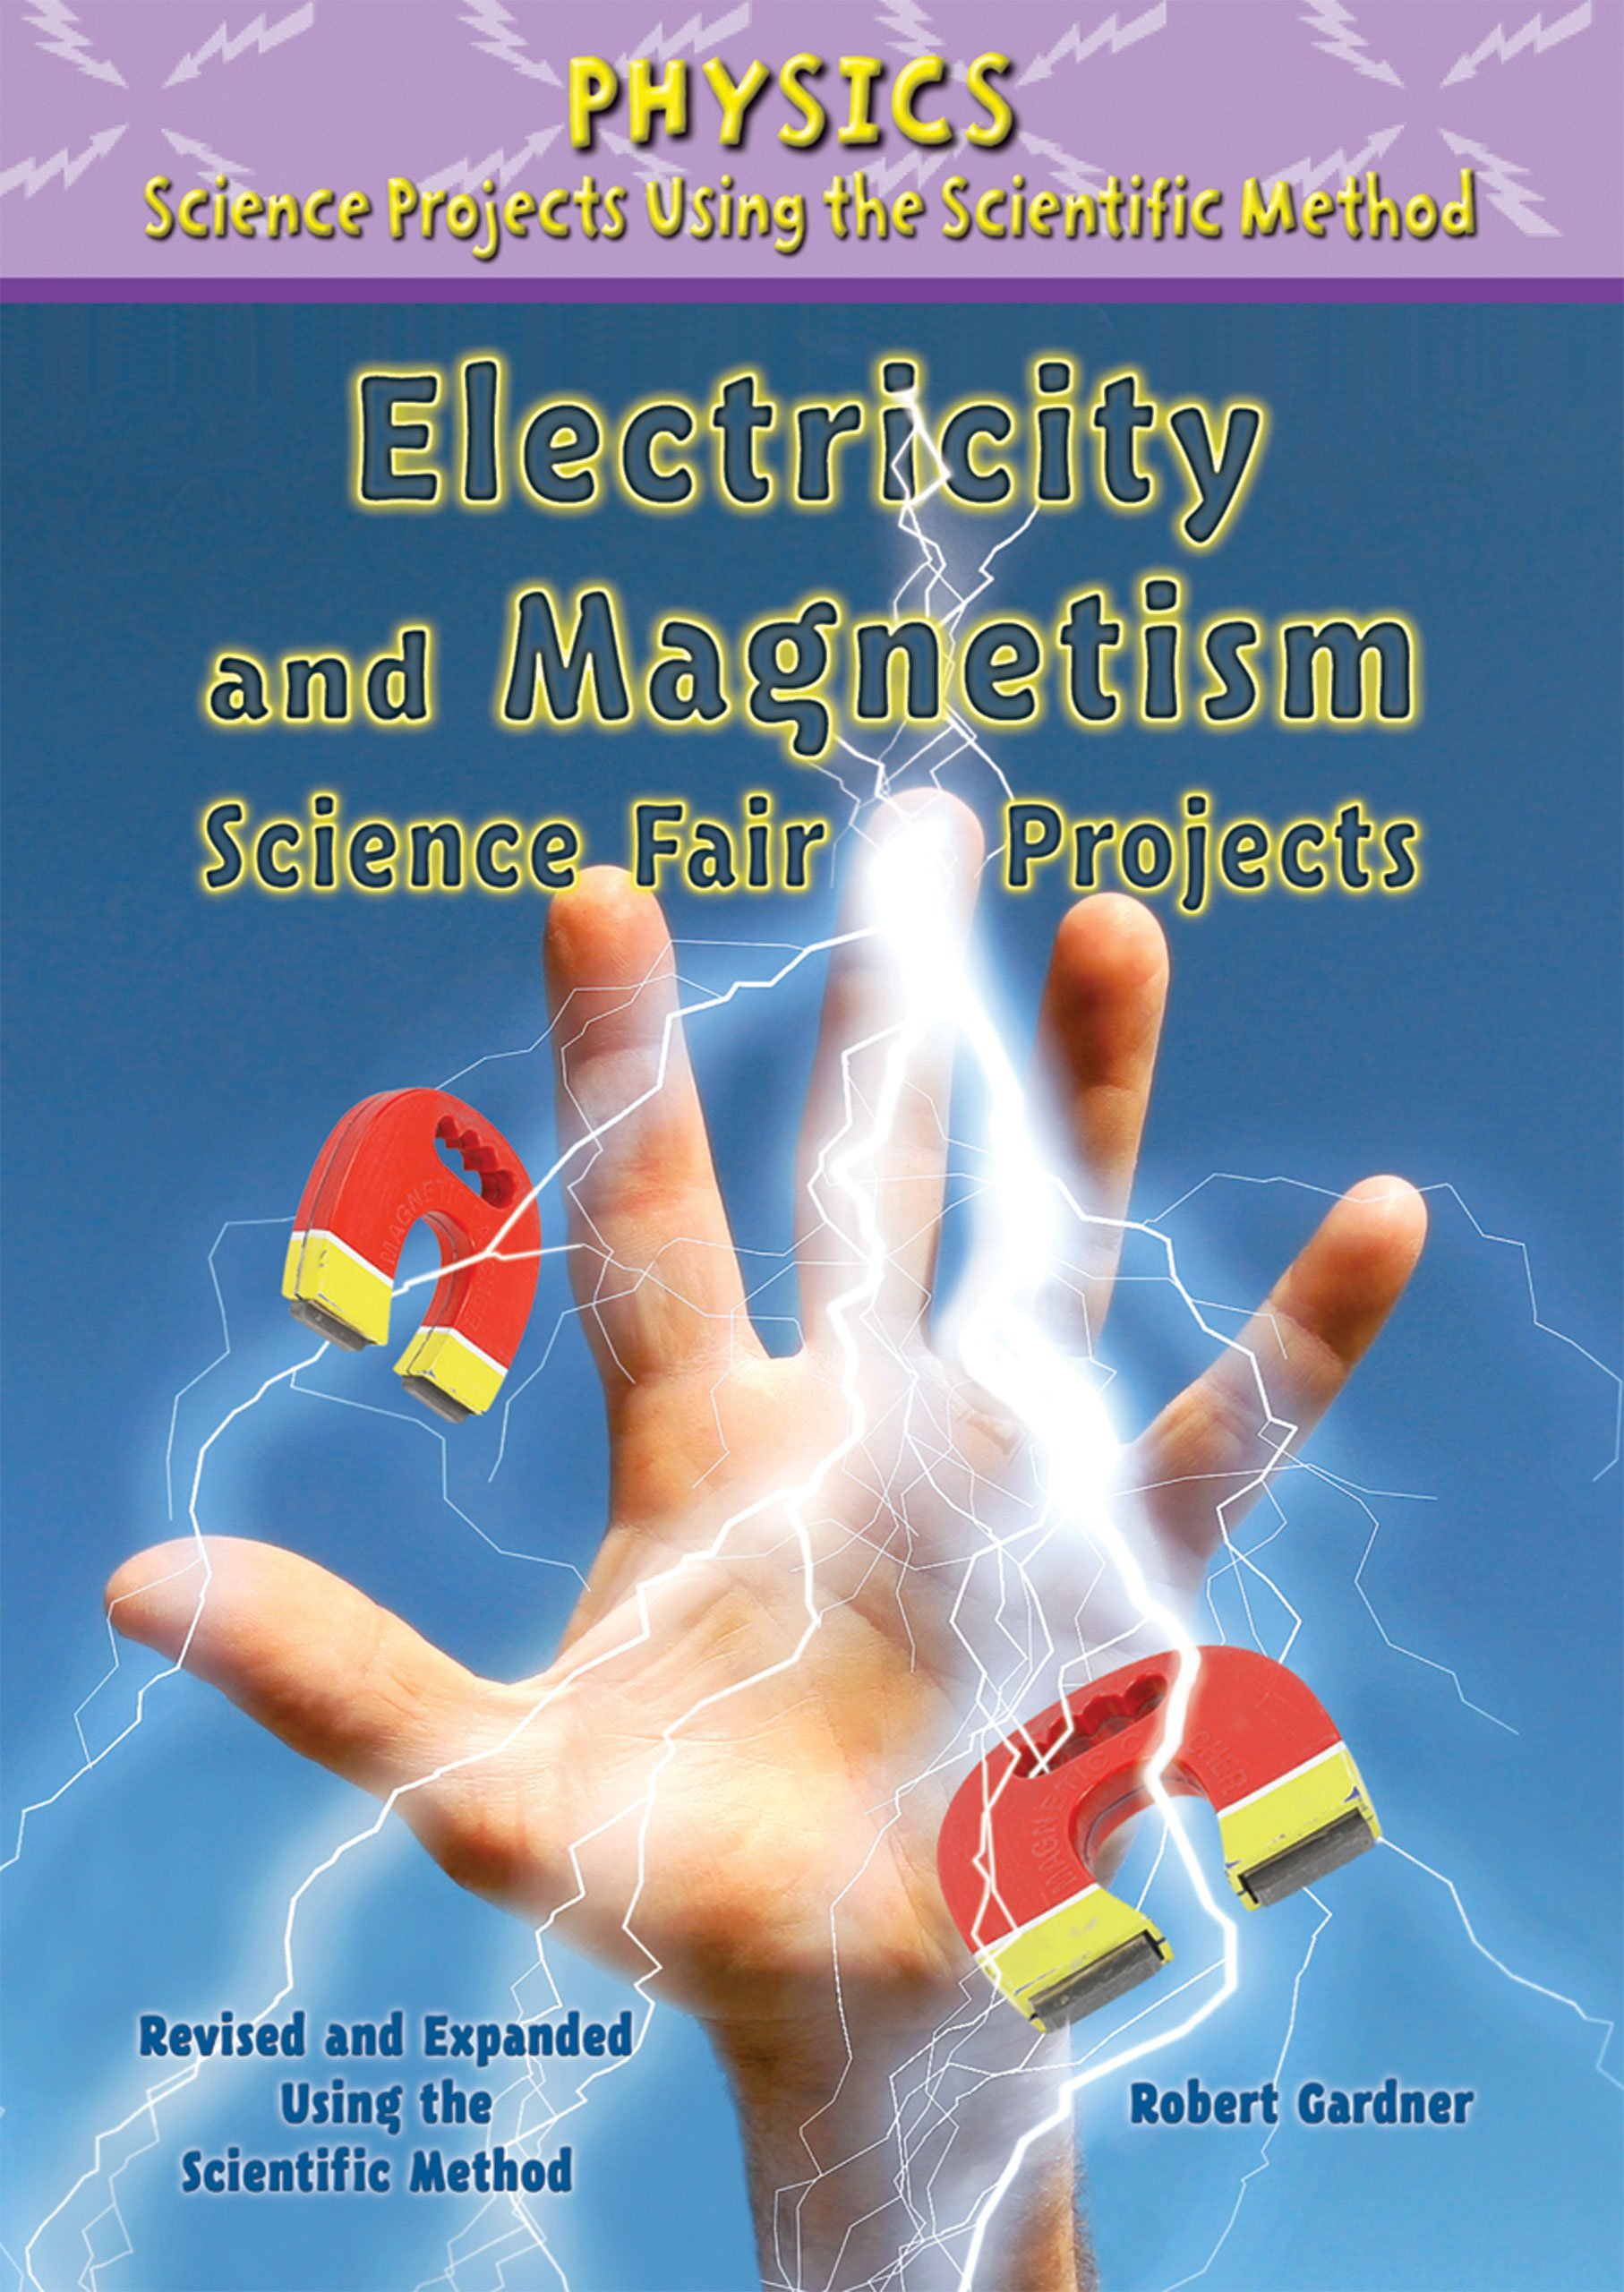 Read Online Electricity and Magnetism Science Fair Projects (Physics Science Projects Using the Scientific Method) pdf